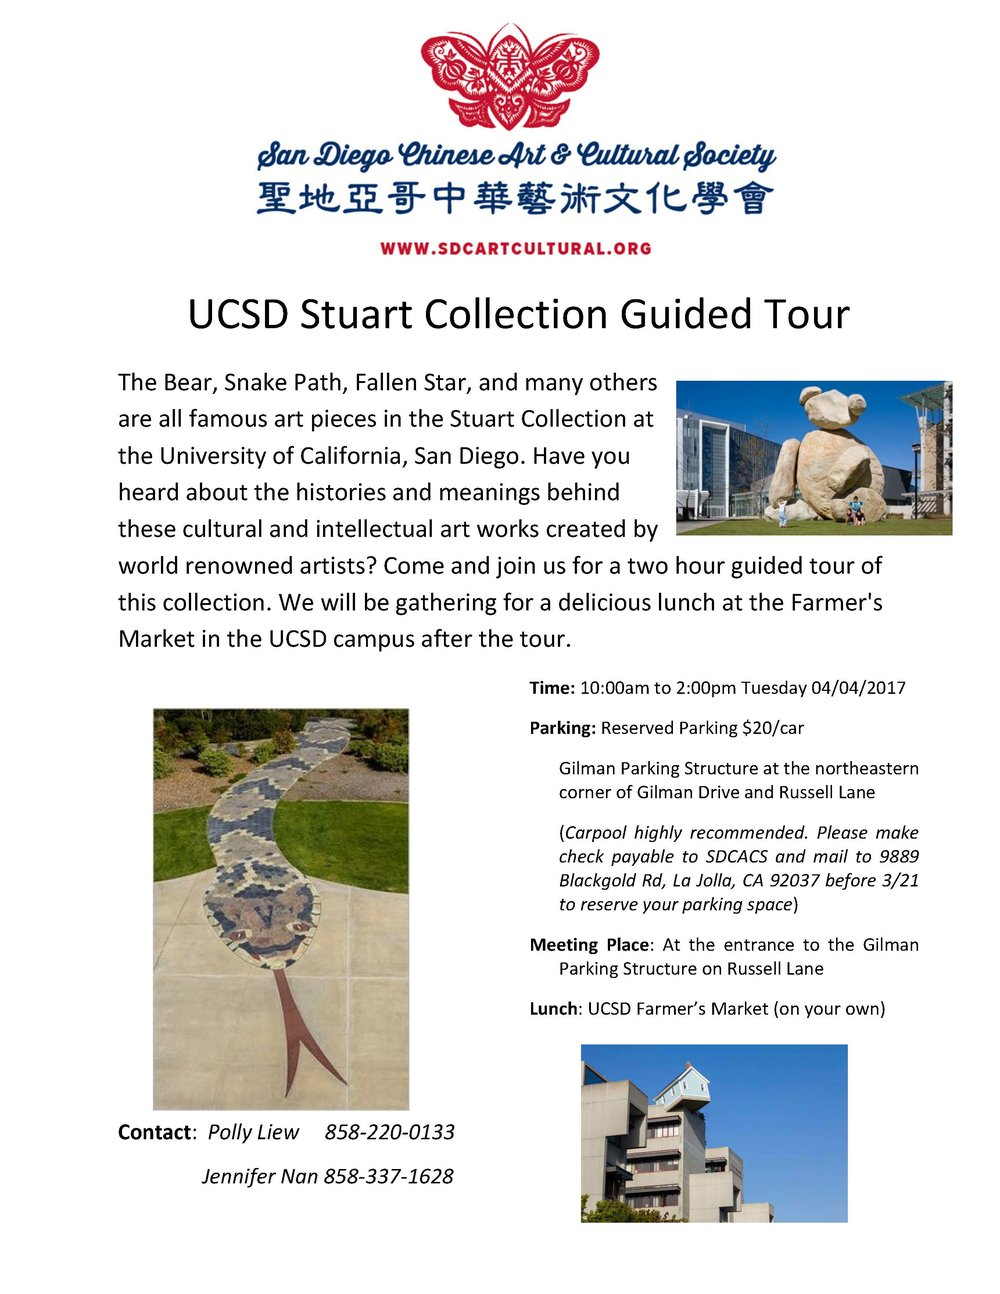 UCSD Stuart Collection Guided Tour flyer.jpg